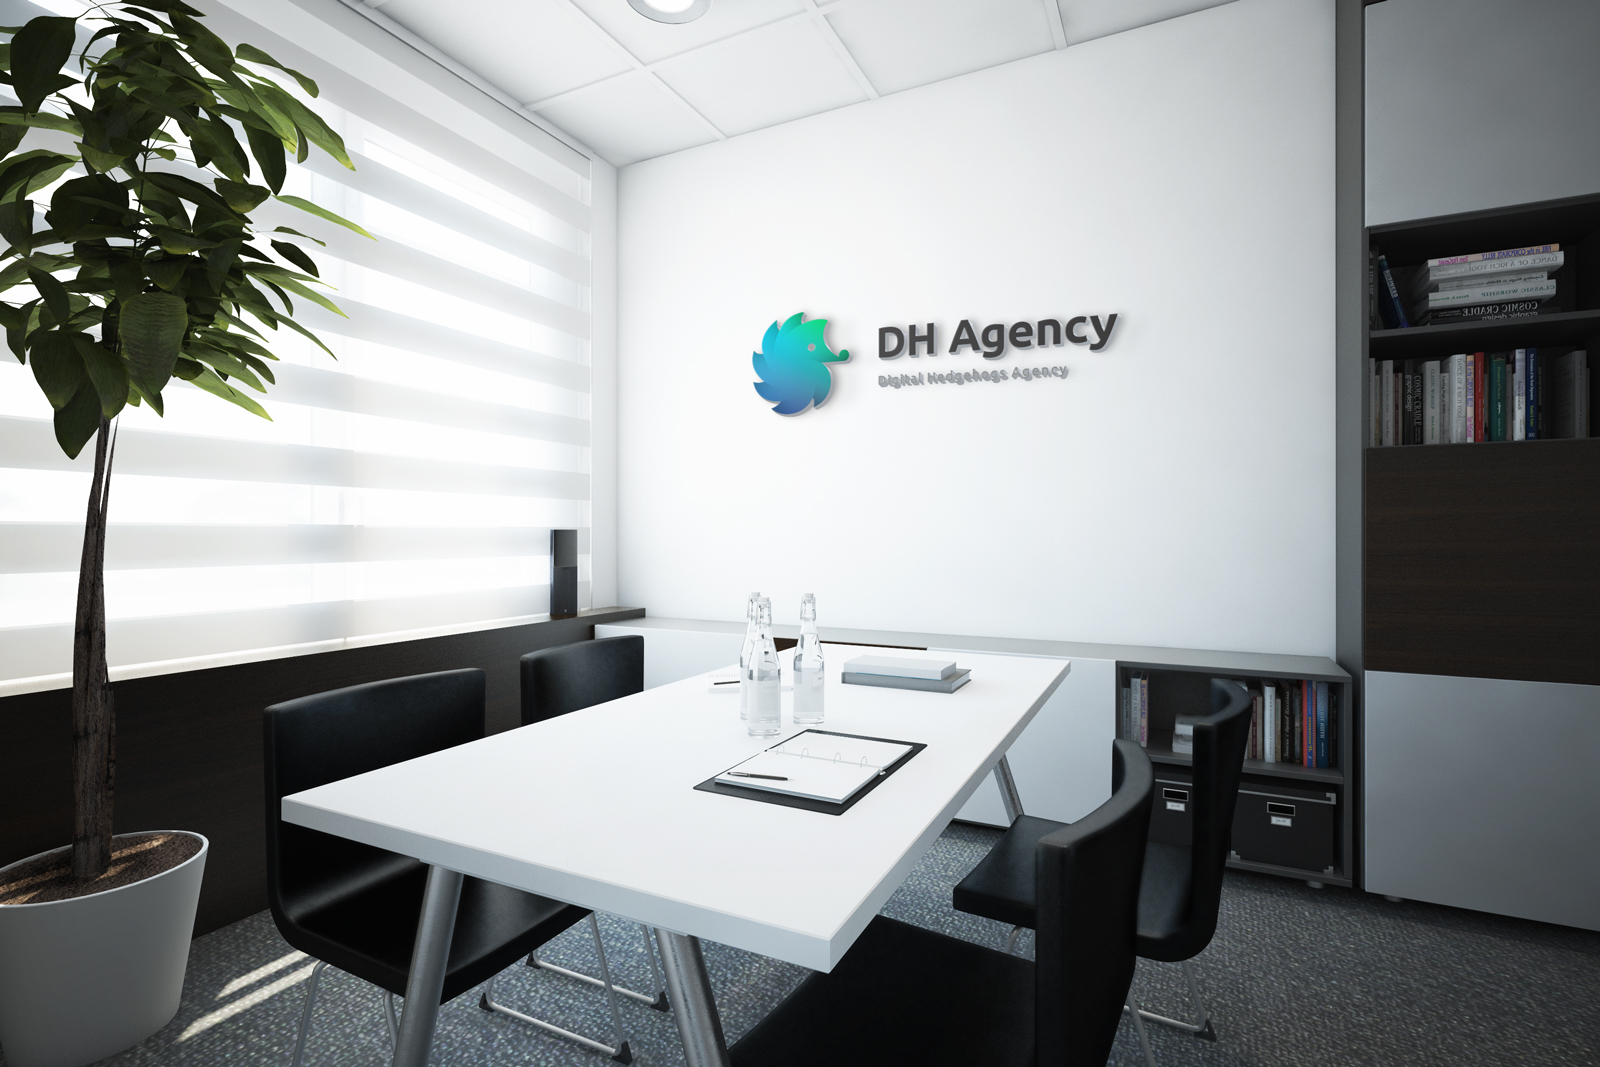 DH Agency